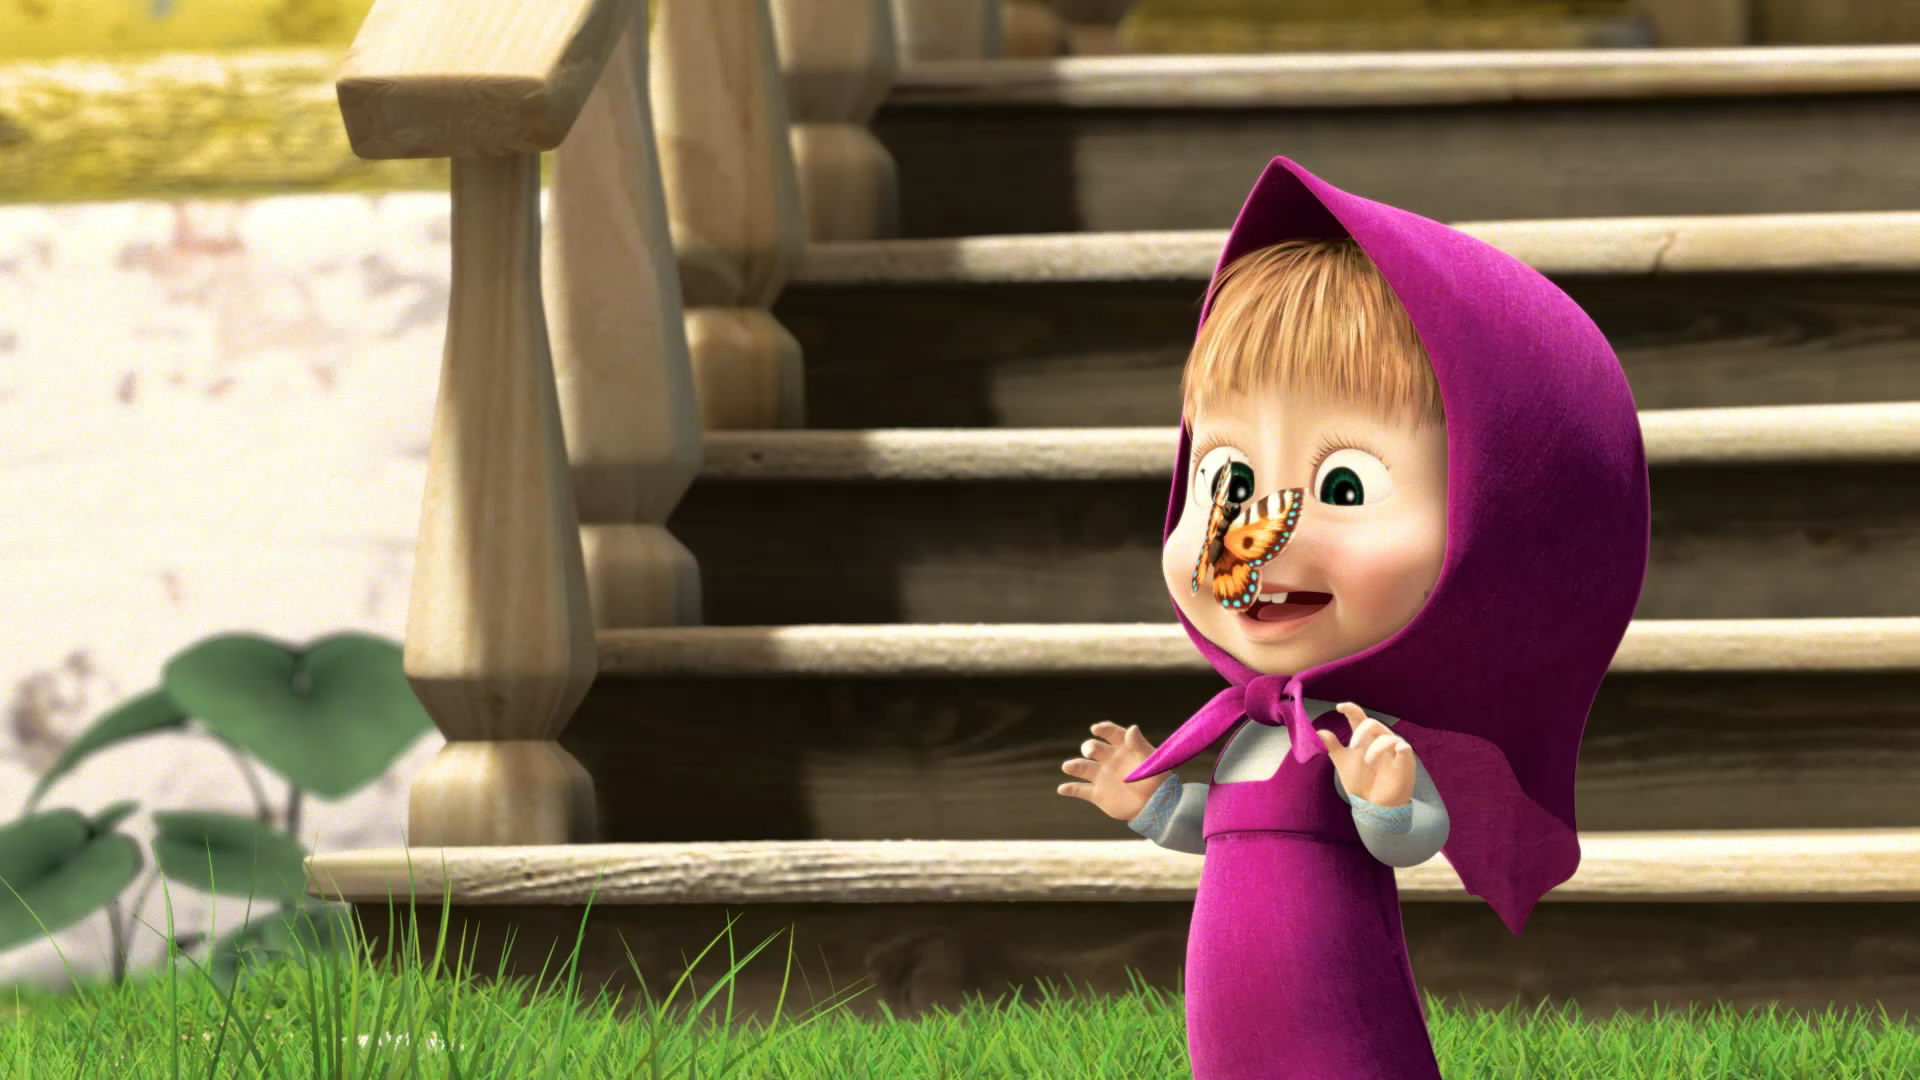 Awesome Masha and the Bear Backgrounds | Masha and the Bear Wallpapers